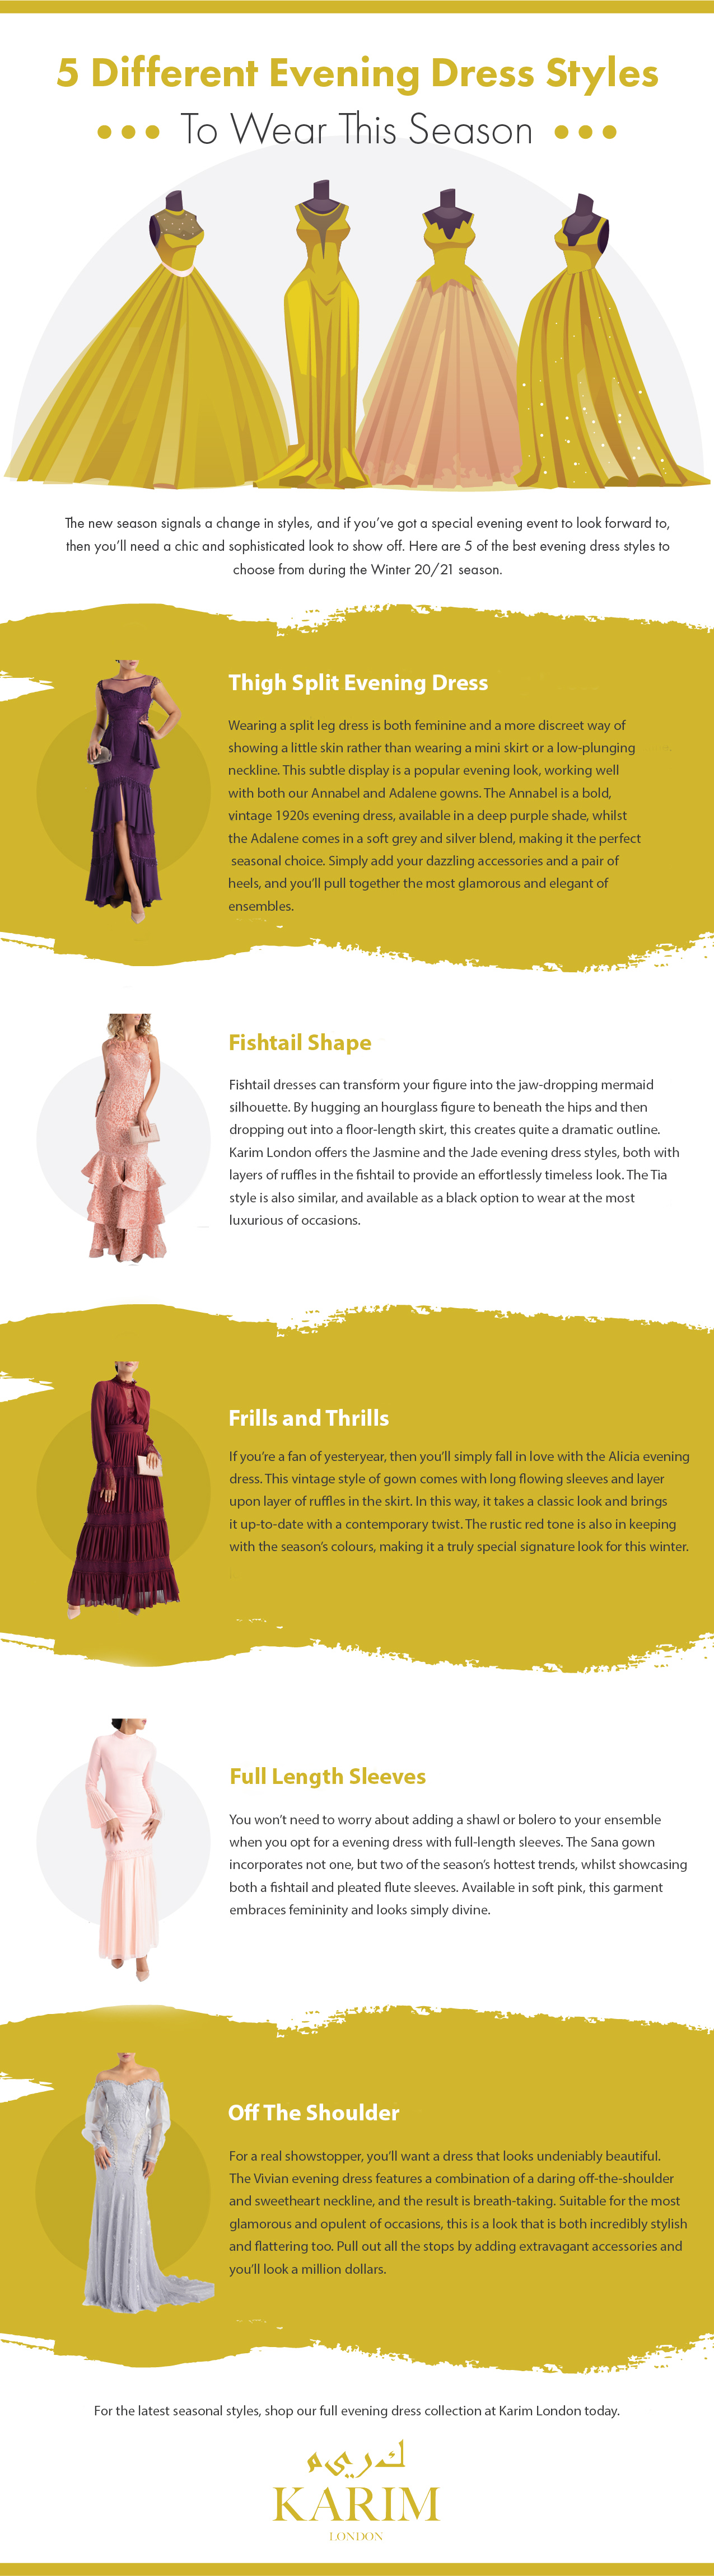 5 Different Evening Dress Styles To Wear This Season